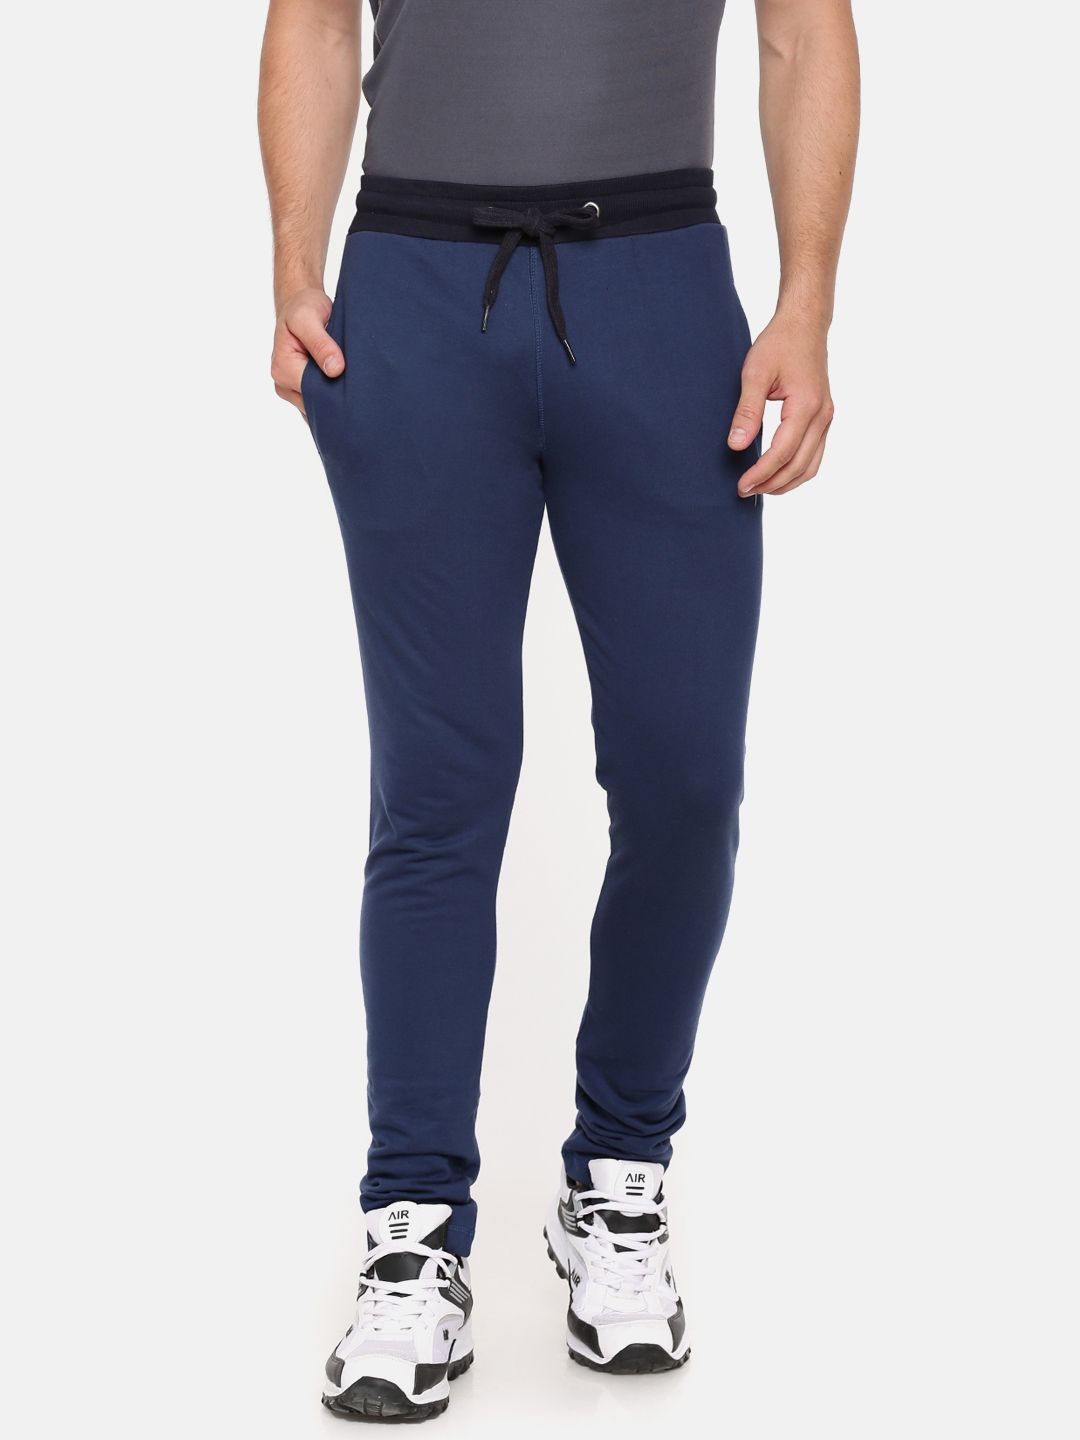 The True Blue Men Lounge Pants